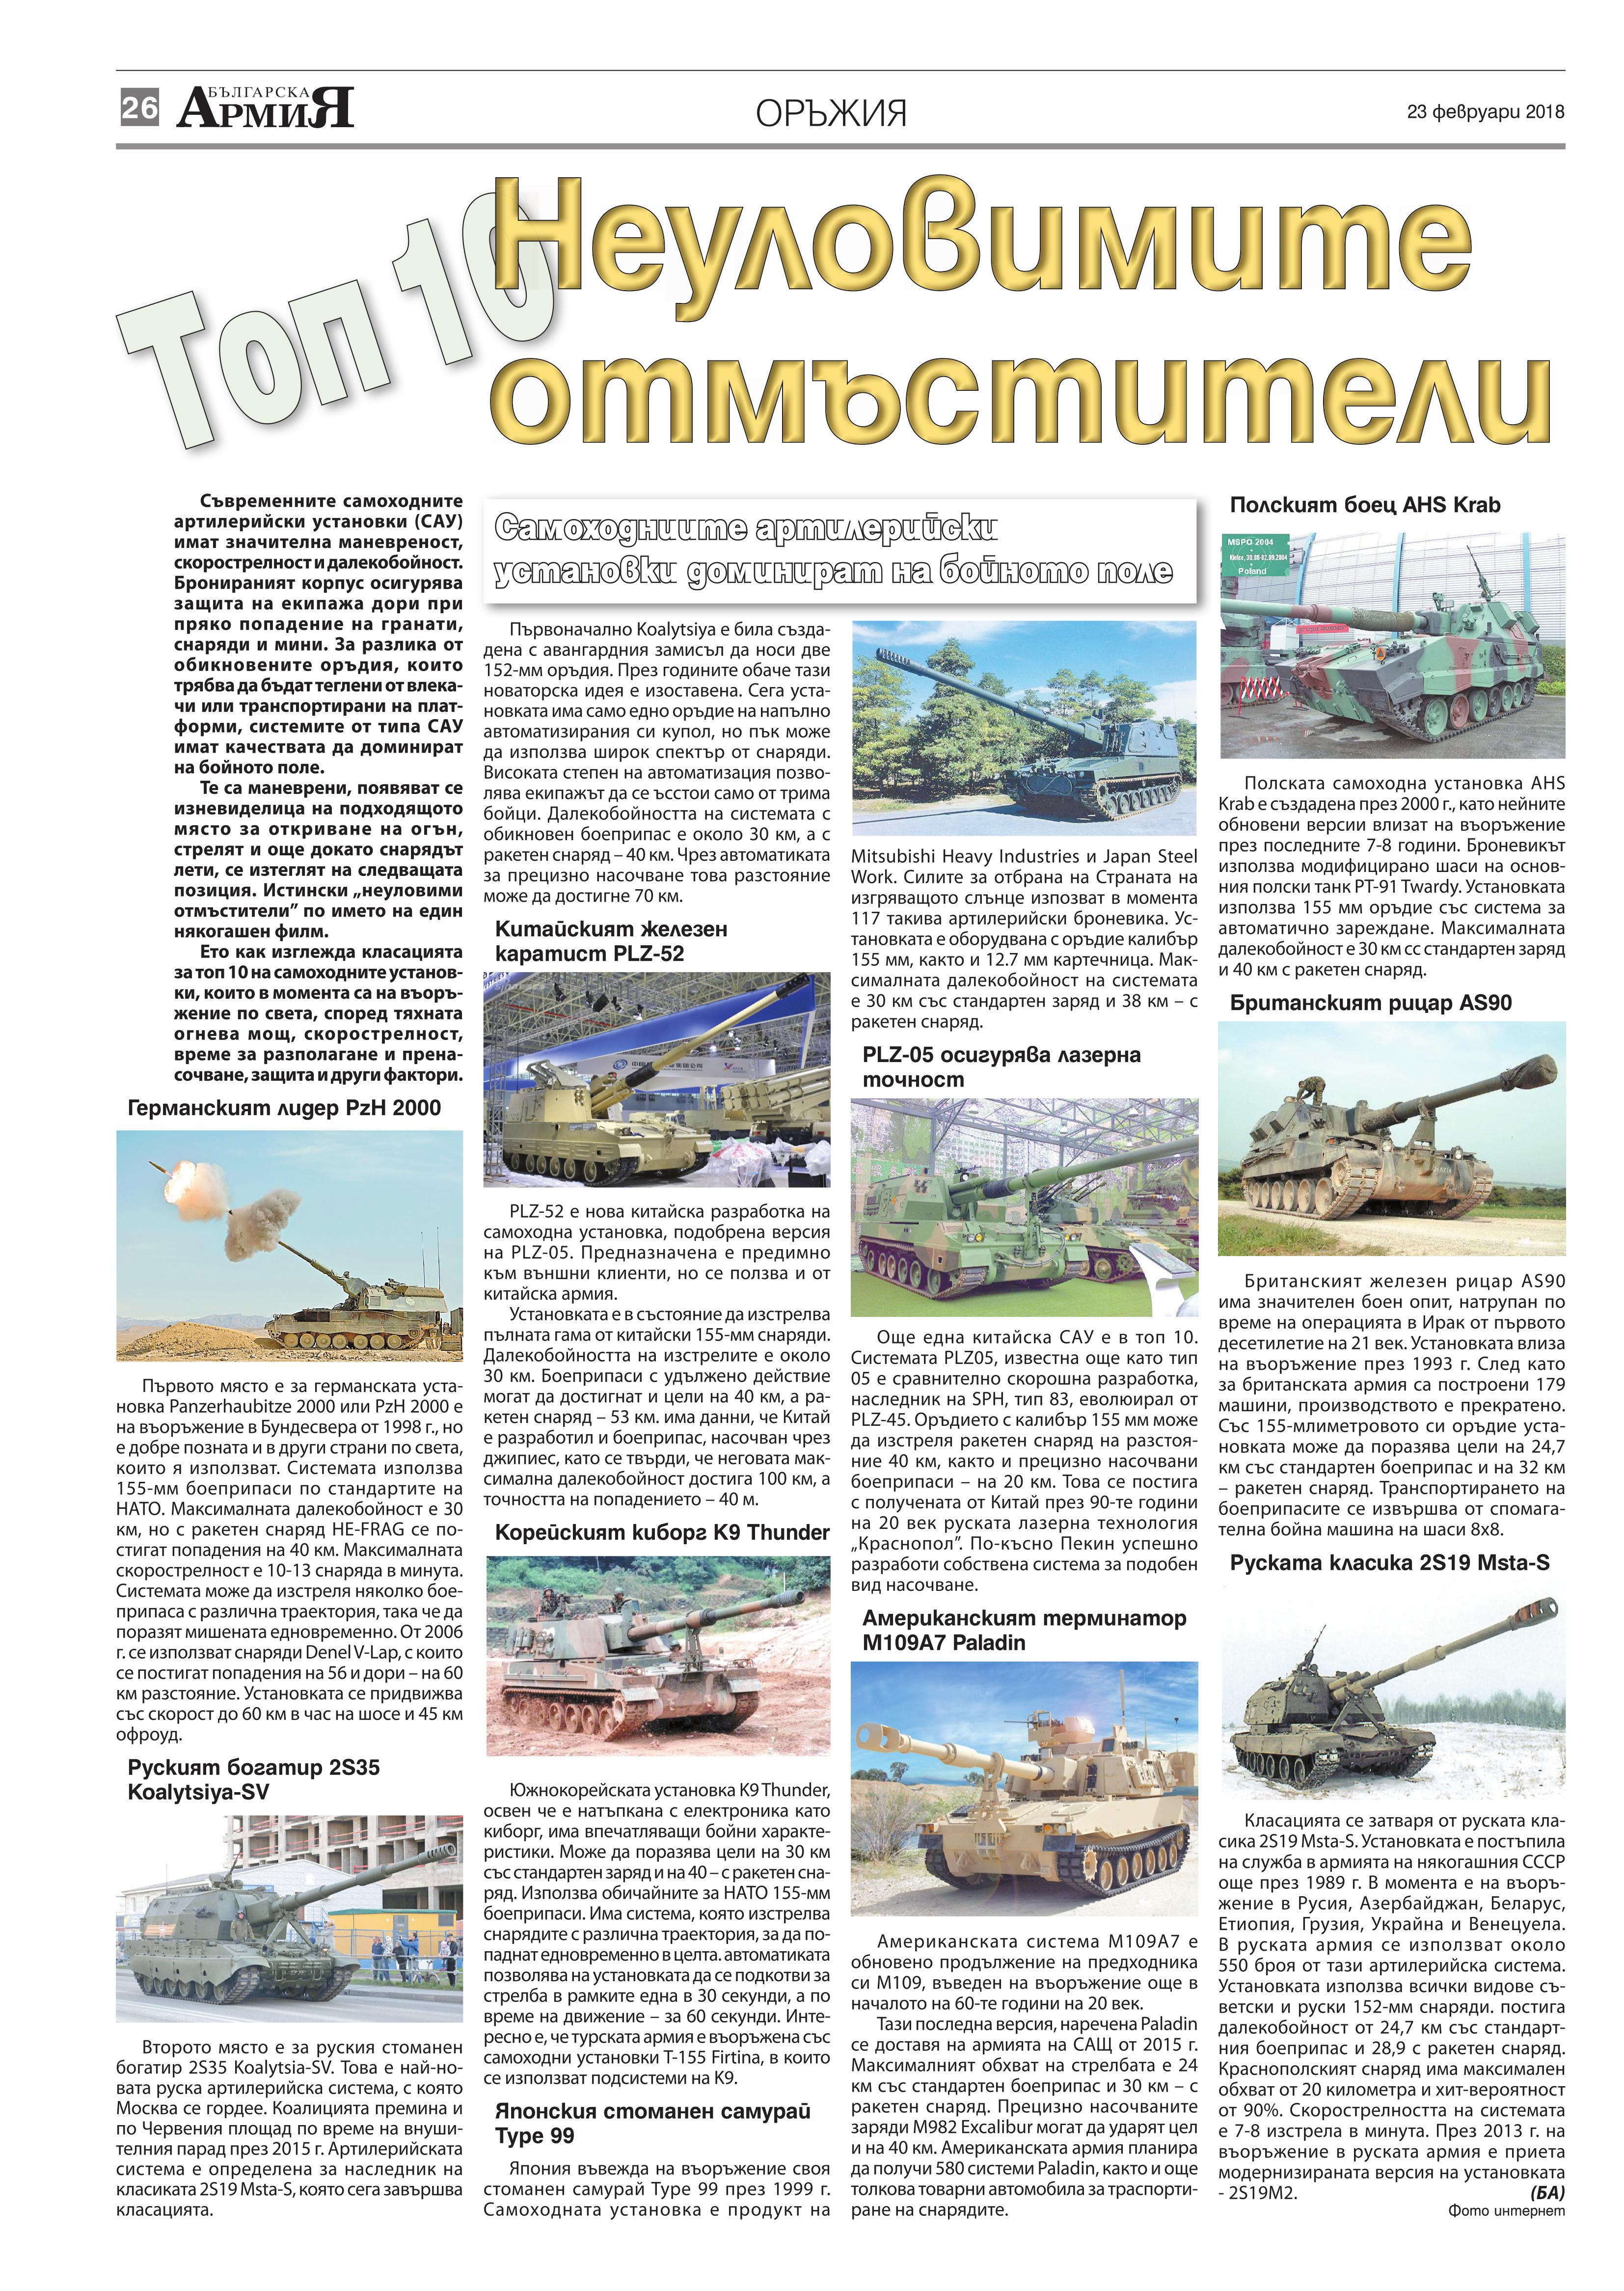 https://armymedia.bg/wp-content/uploads/2015/06/26.page1_-35.jpg